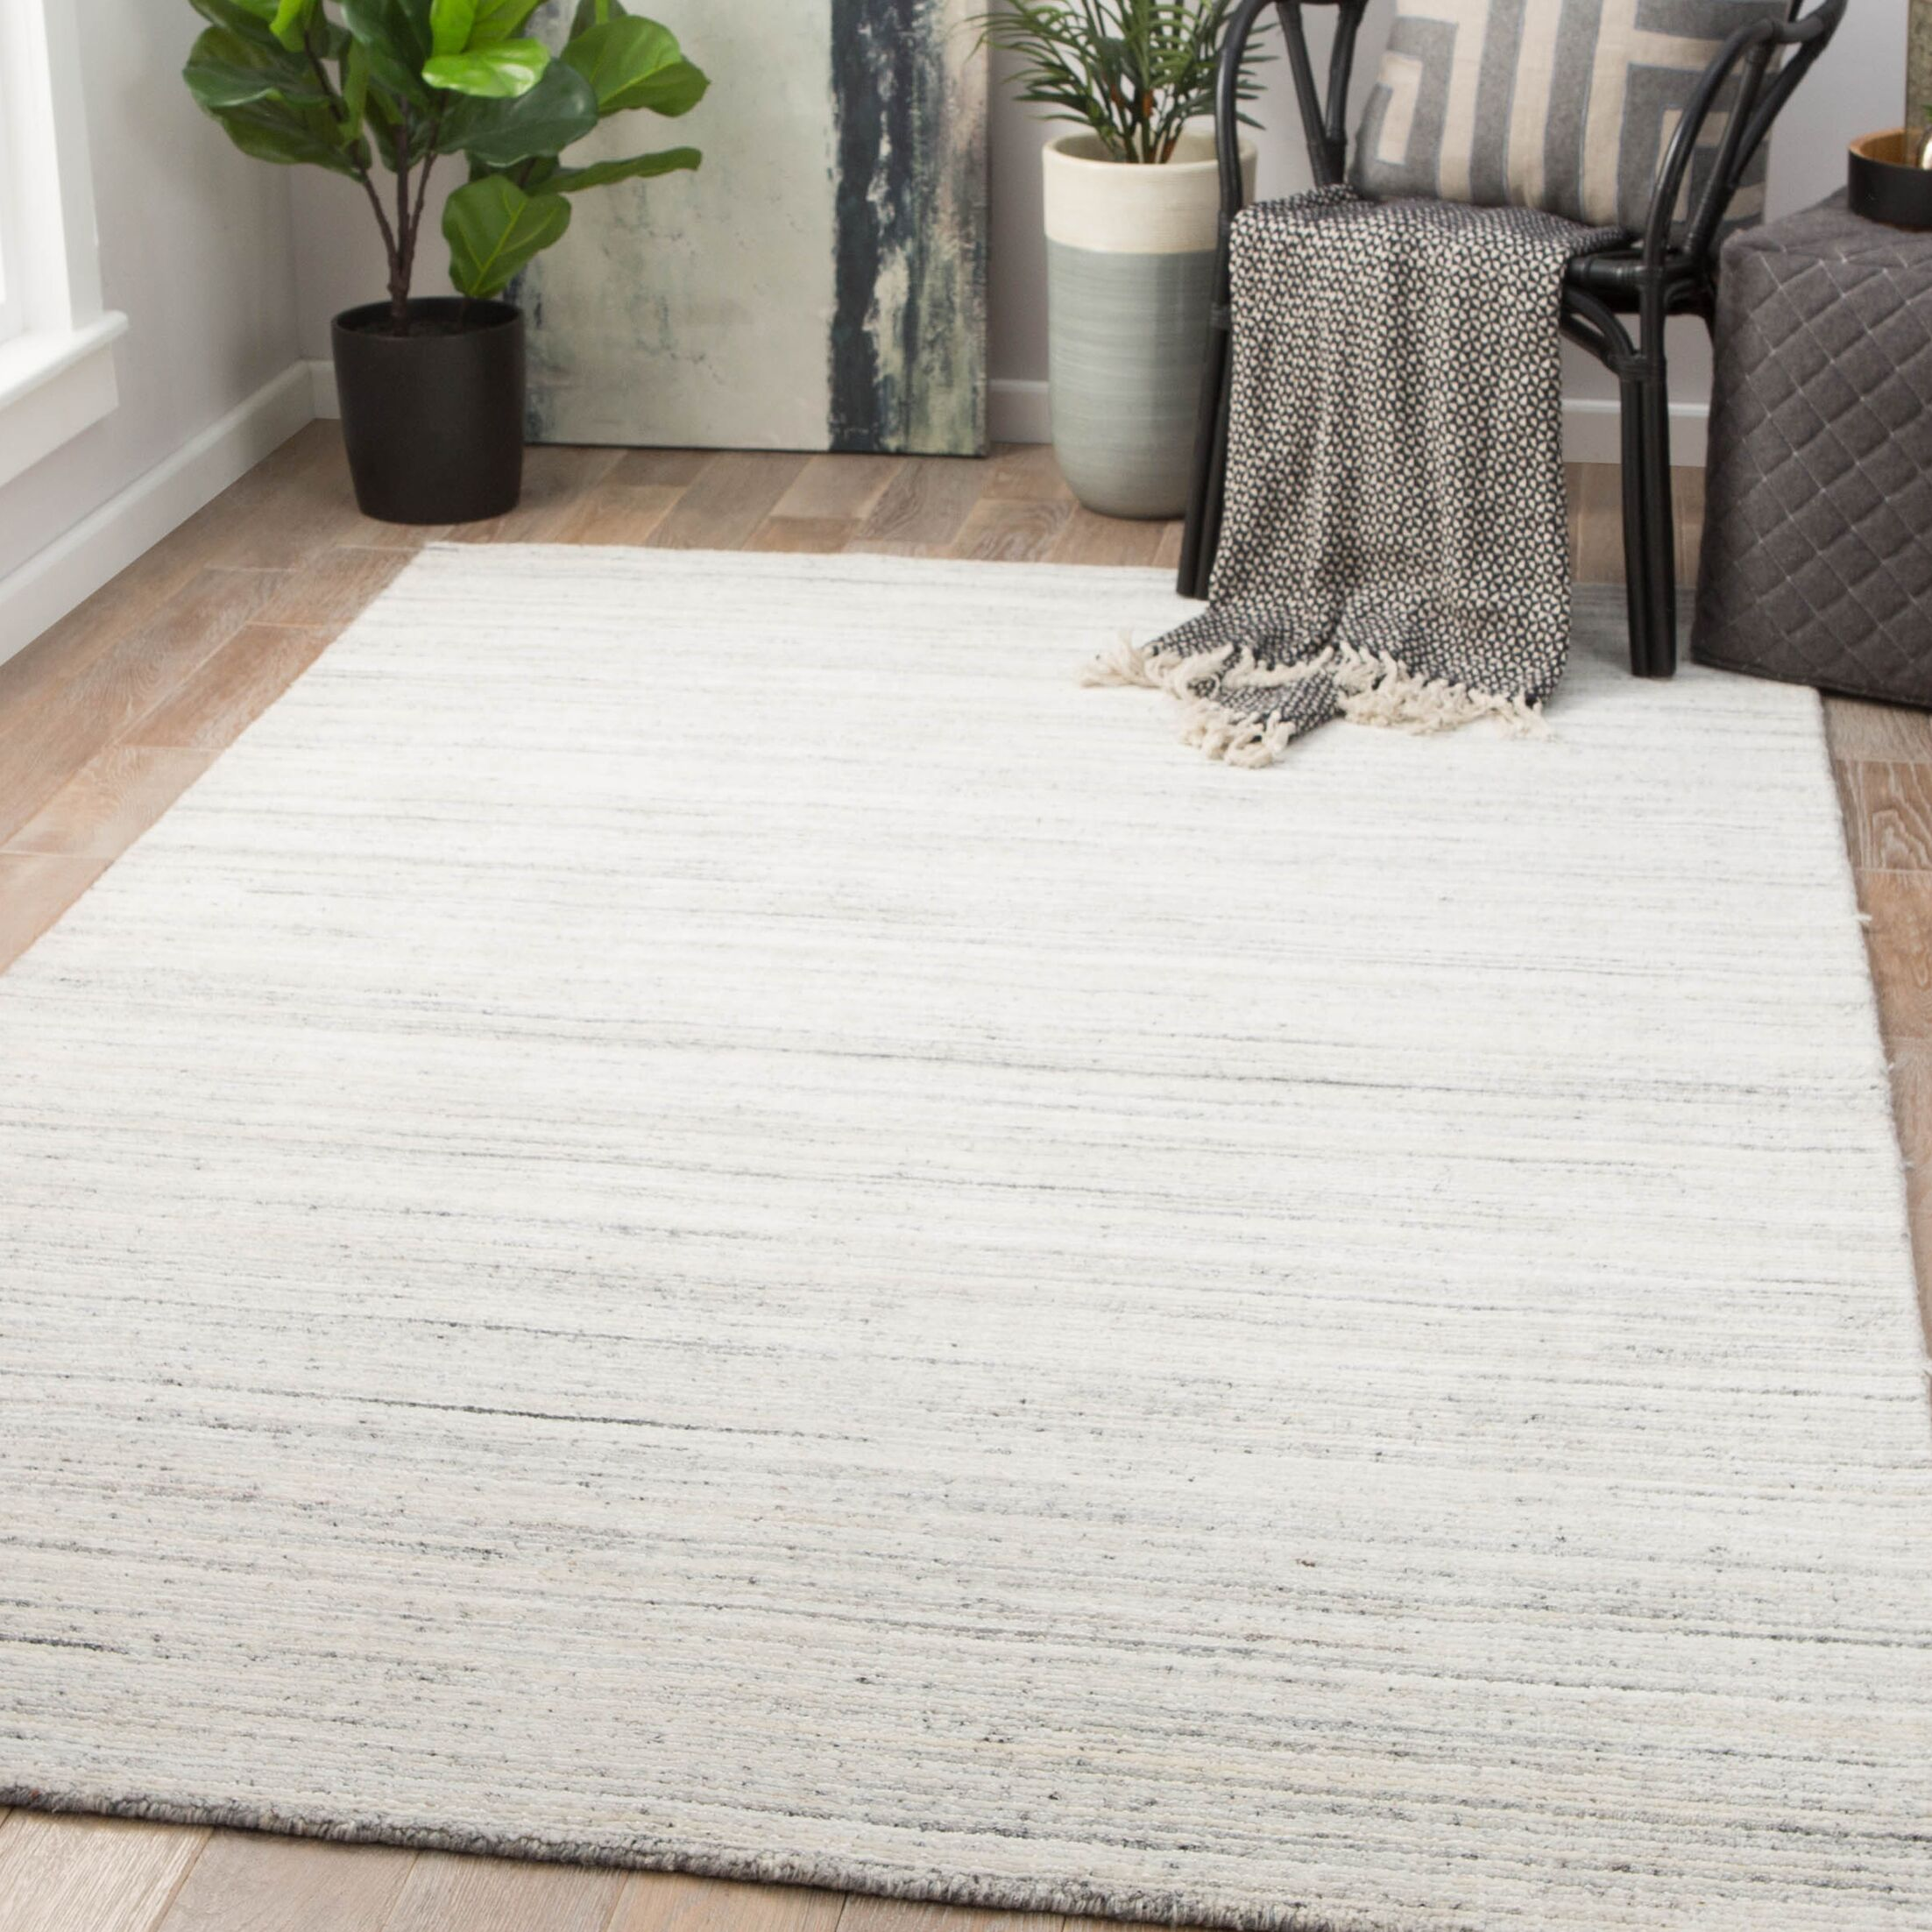 Schmit Hand-Woven Wool Blanc De Blanc/Smoked Pearl Area Rug Rug Size: Rectangle 2' x 3'